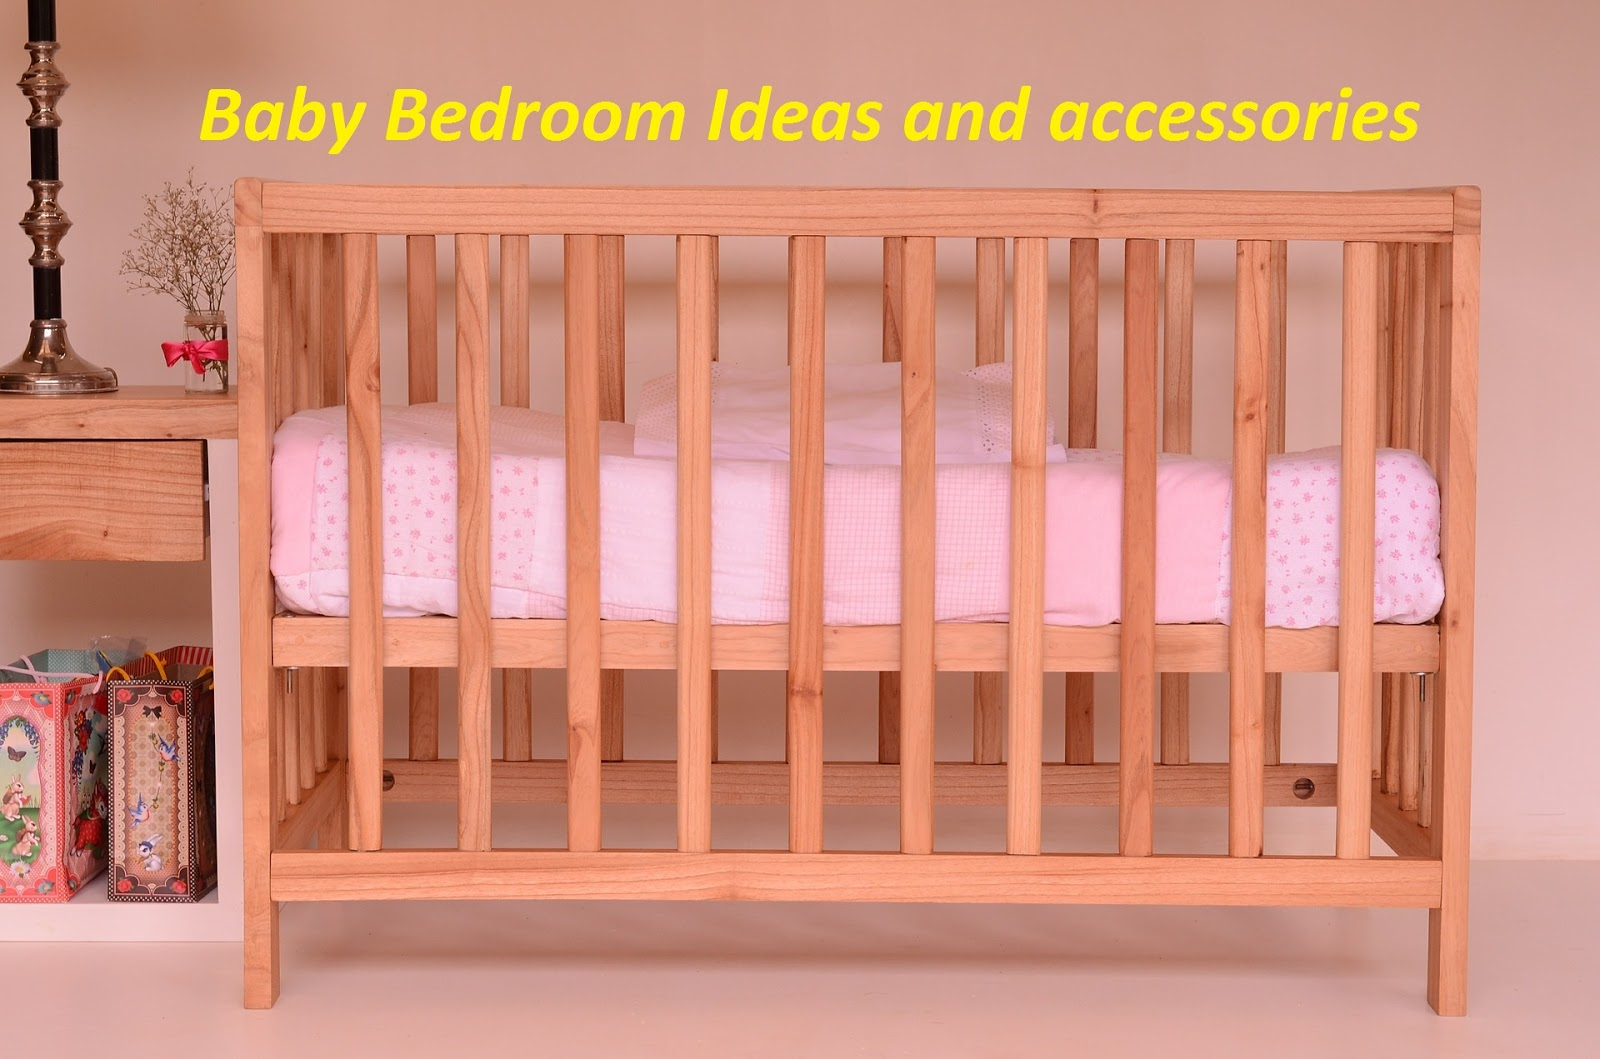 Baby Bedroom Ideas and accessories